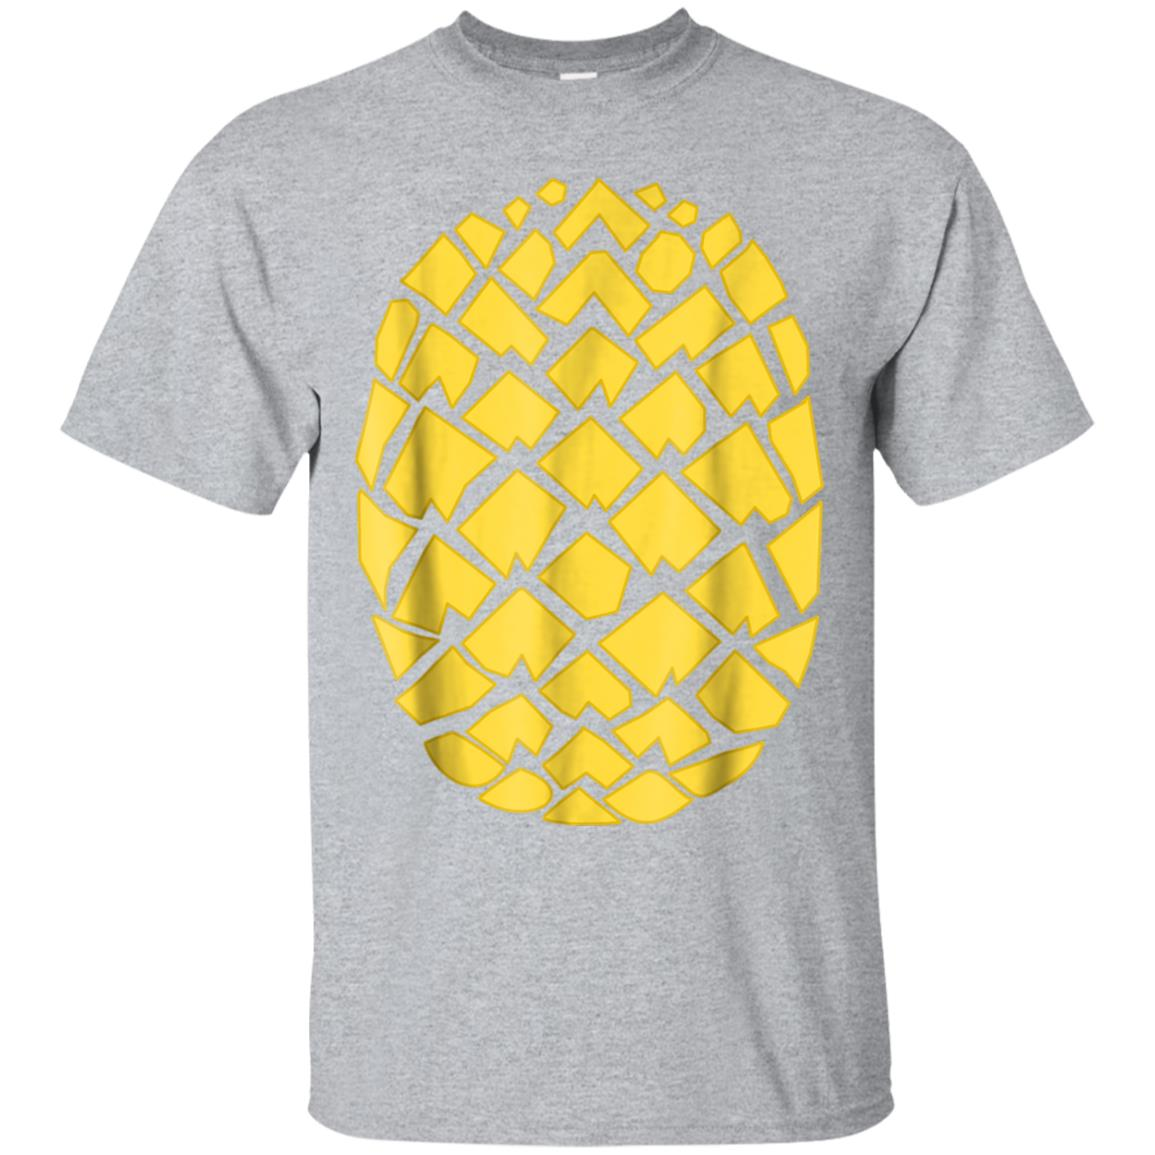 Pineapple Costume T-Shirt Halloween Costume Shirt 99promocode